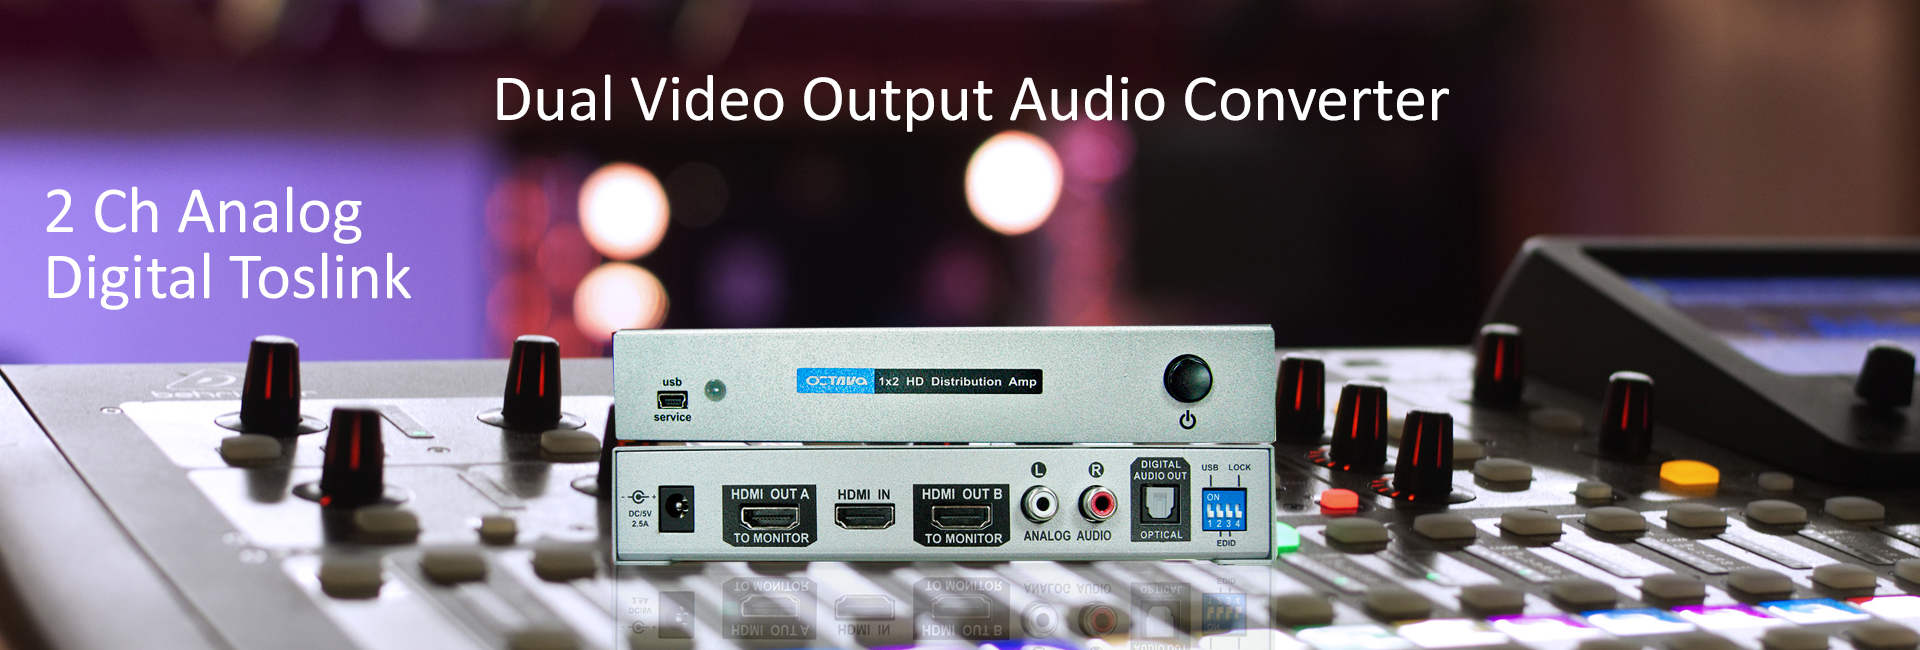 HDMI 1×2 Distribution Amp Audio Converter – Video Over IP